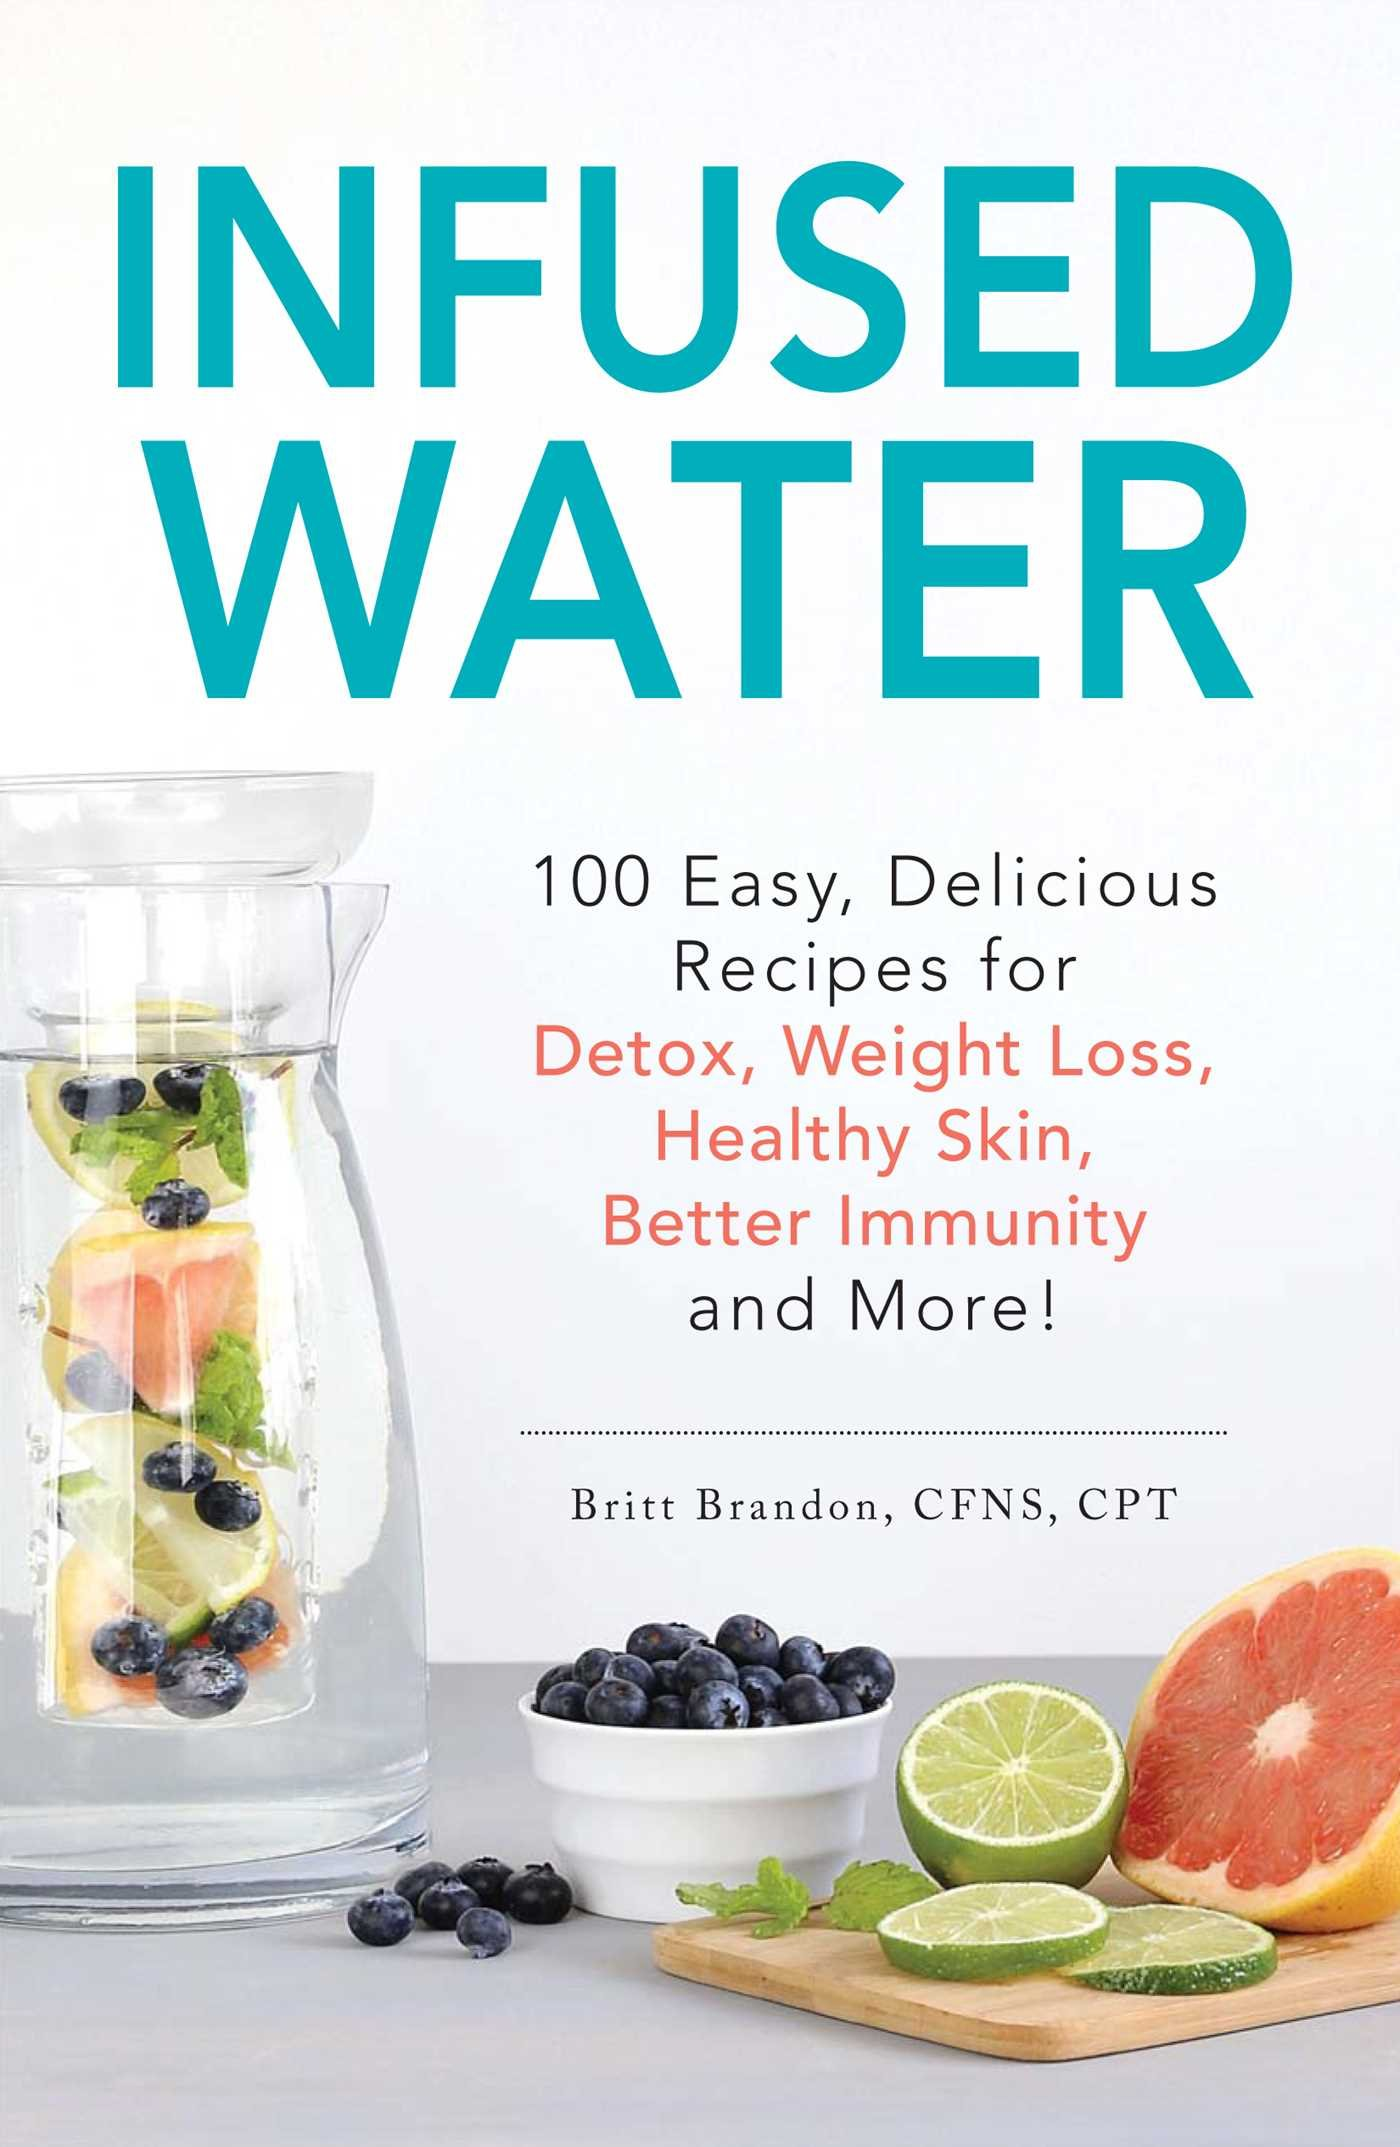 Infused water 100 easy delicious recipes for detox weight loss infused water 100 easy delicious recipes for detox weight loss healthy skin better immunity and more britt brandon 9781440594700 amazon books forumfinder Gallery